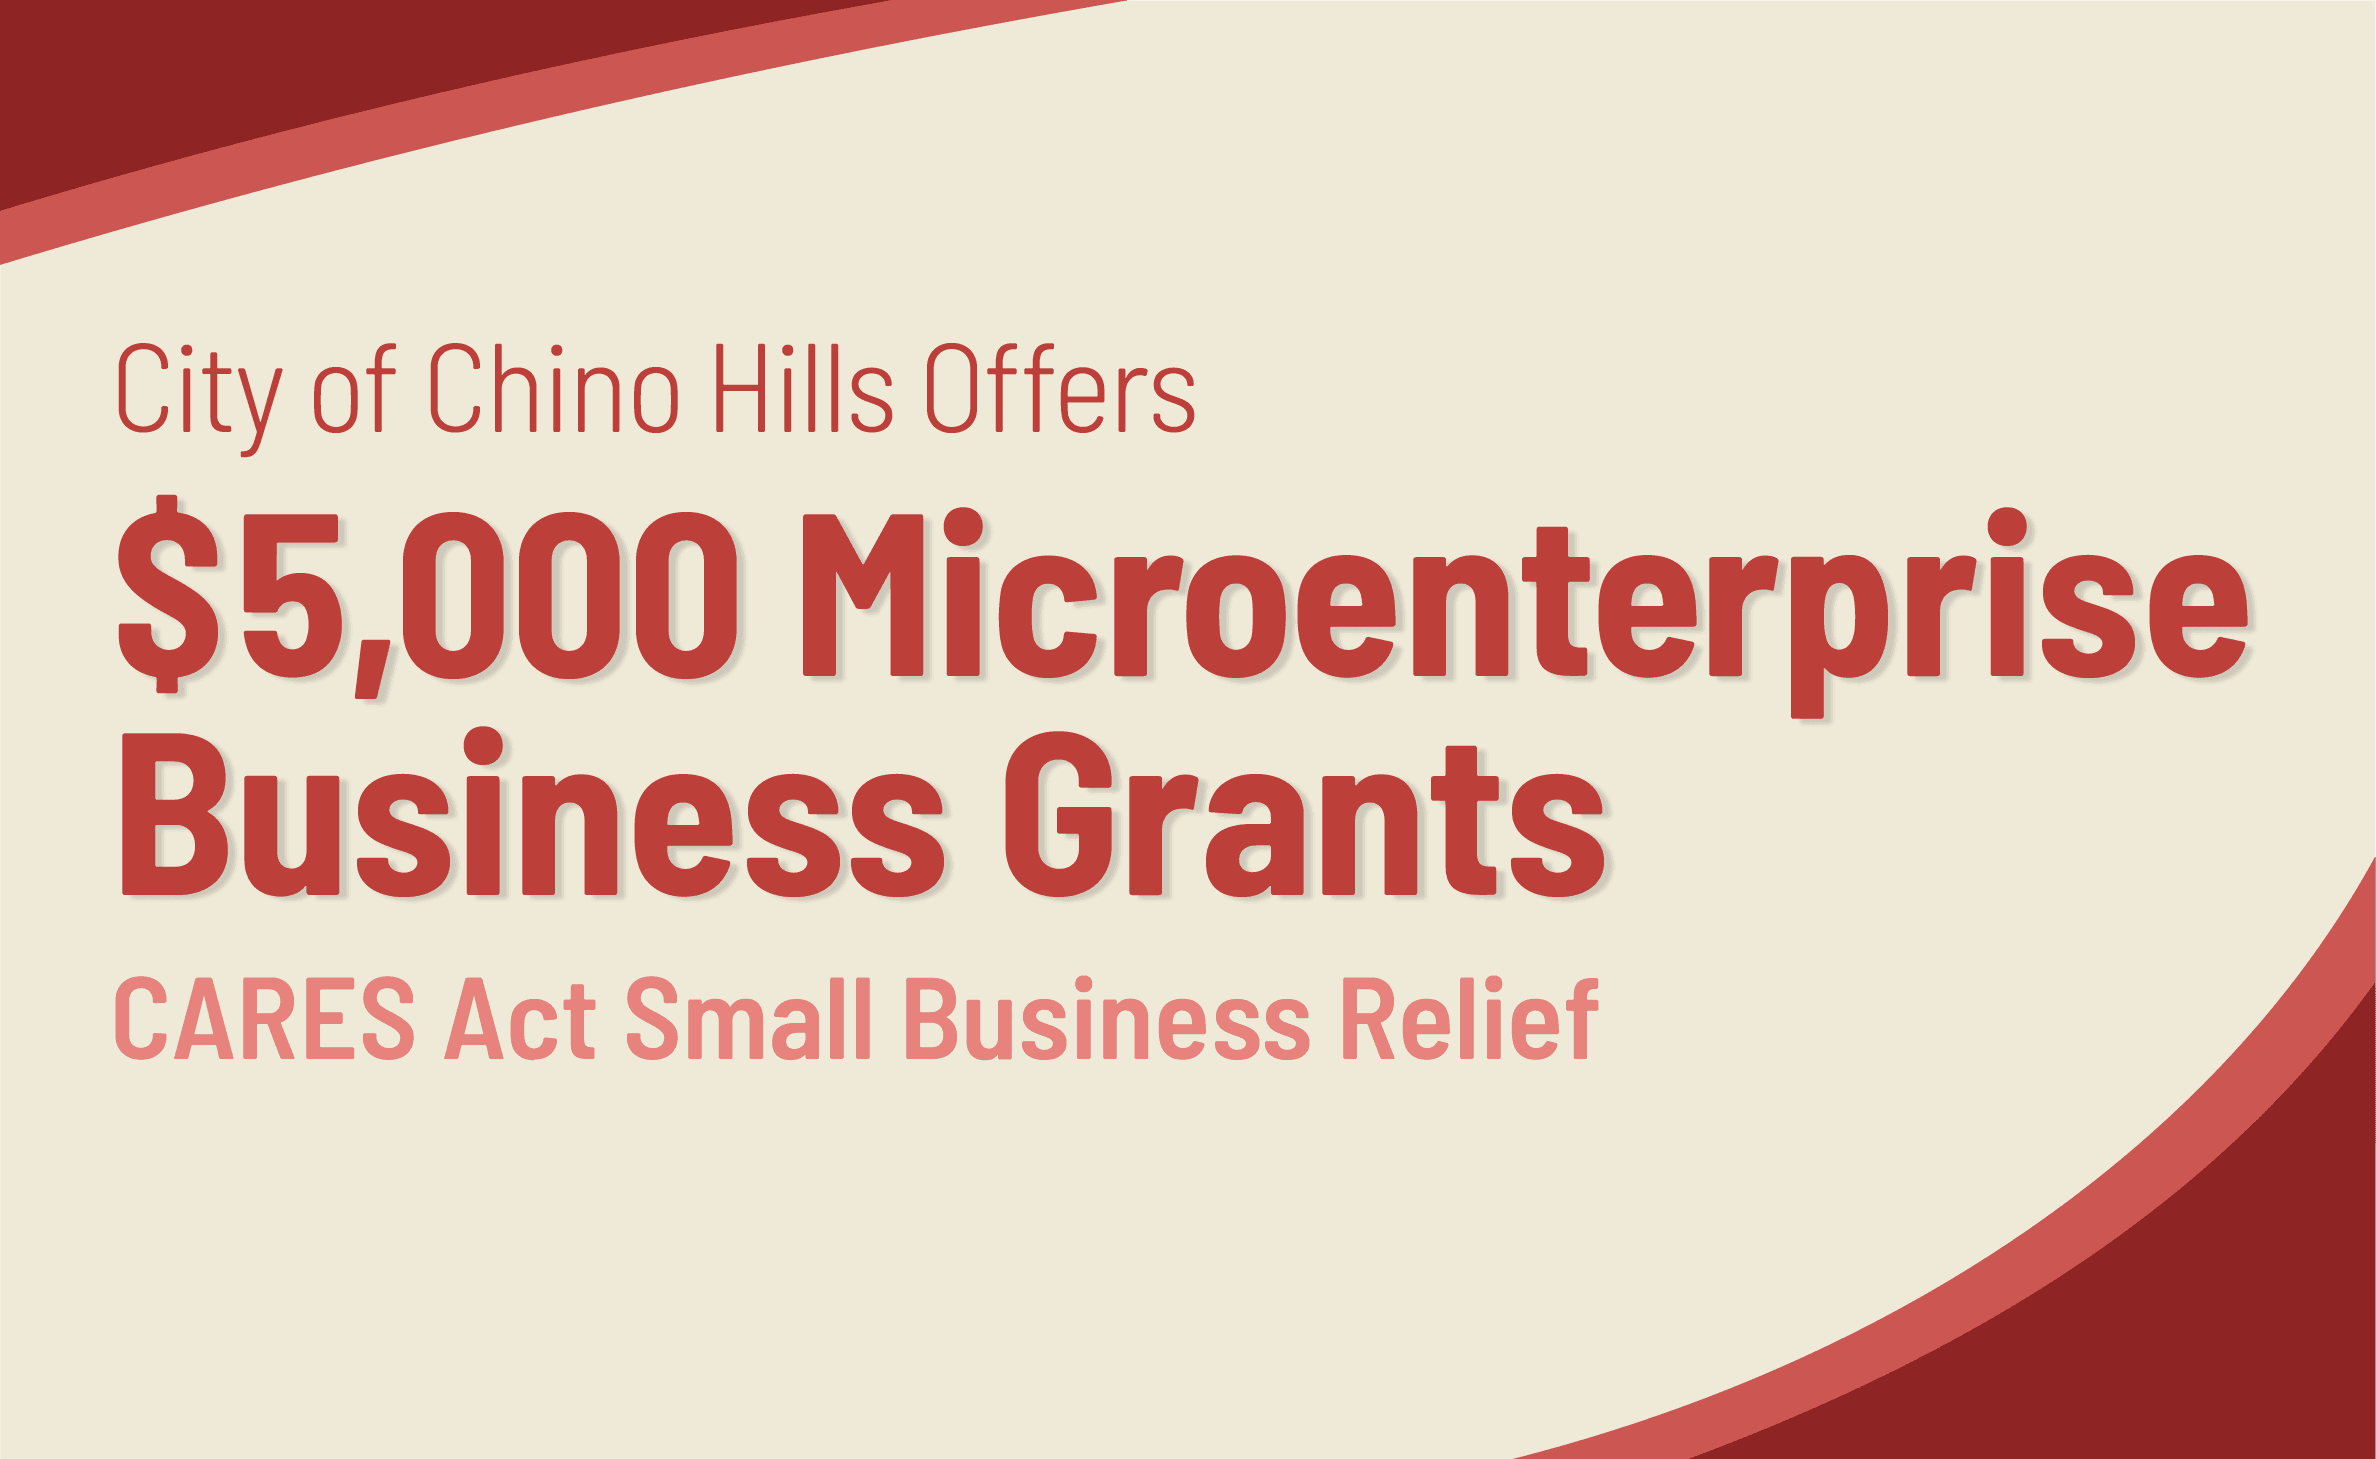 Microenterprise Business Grants - Newsflash Opens in new window